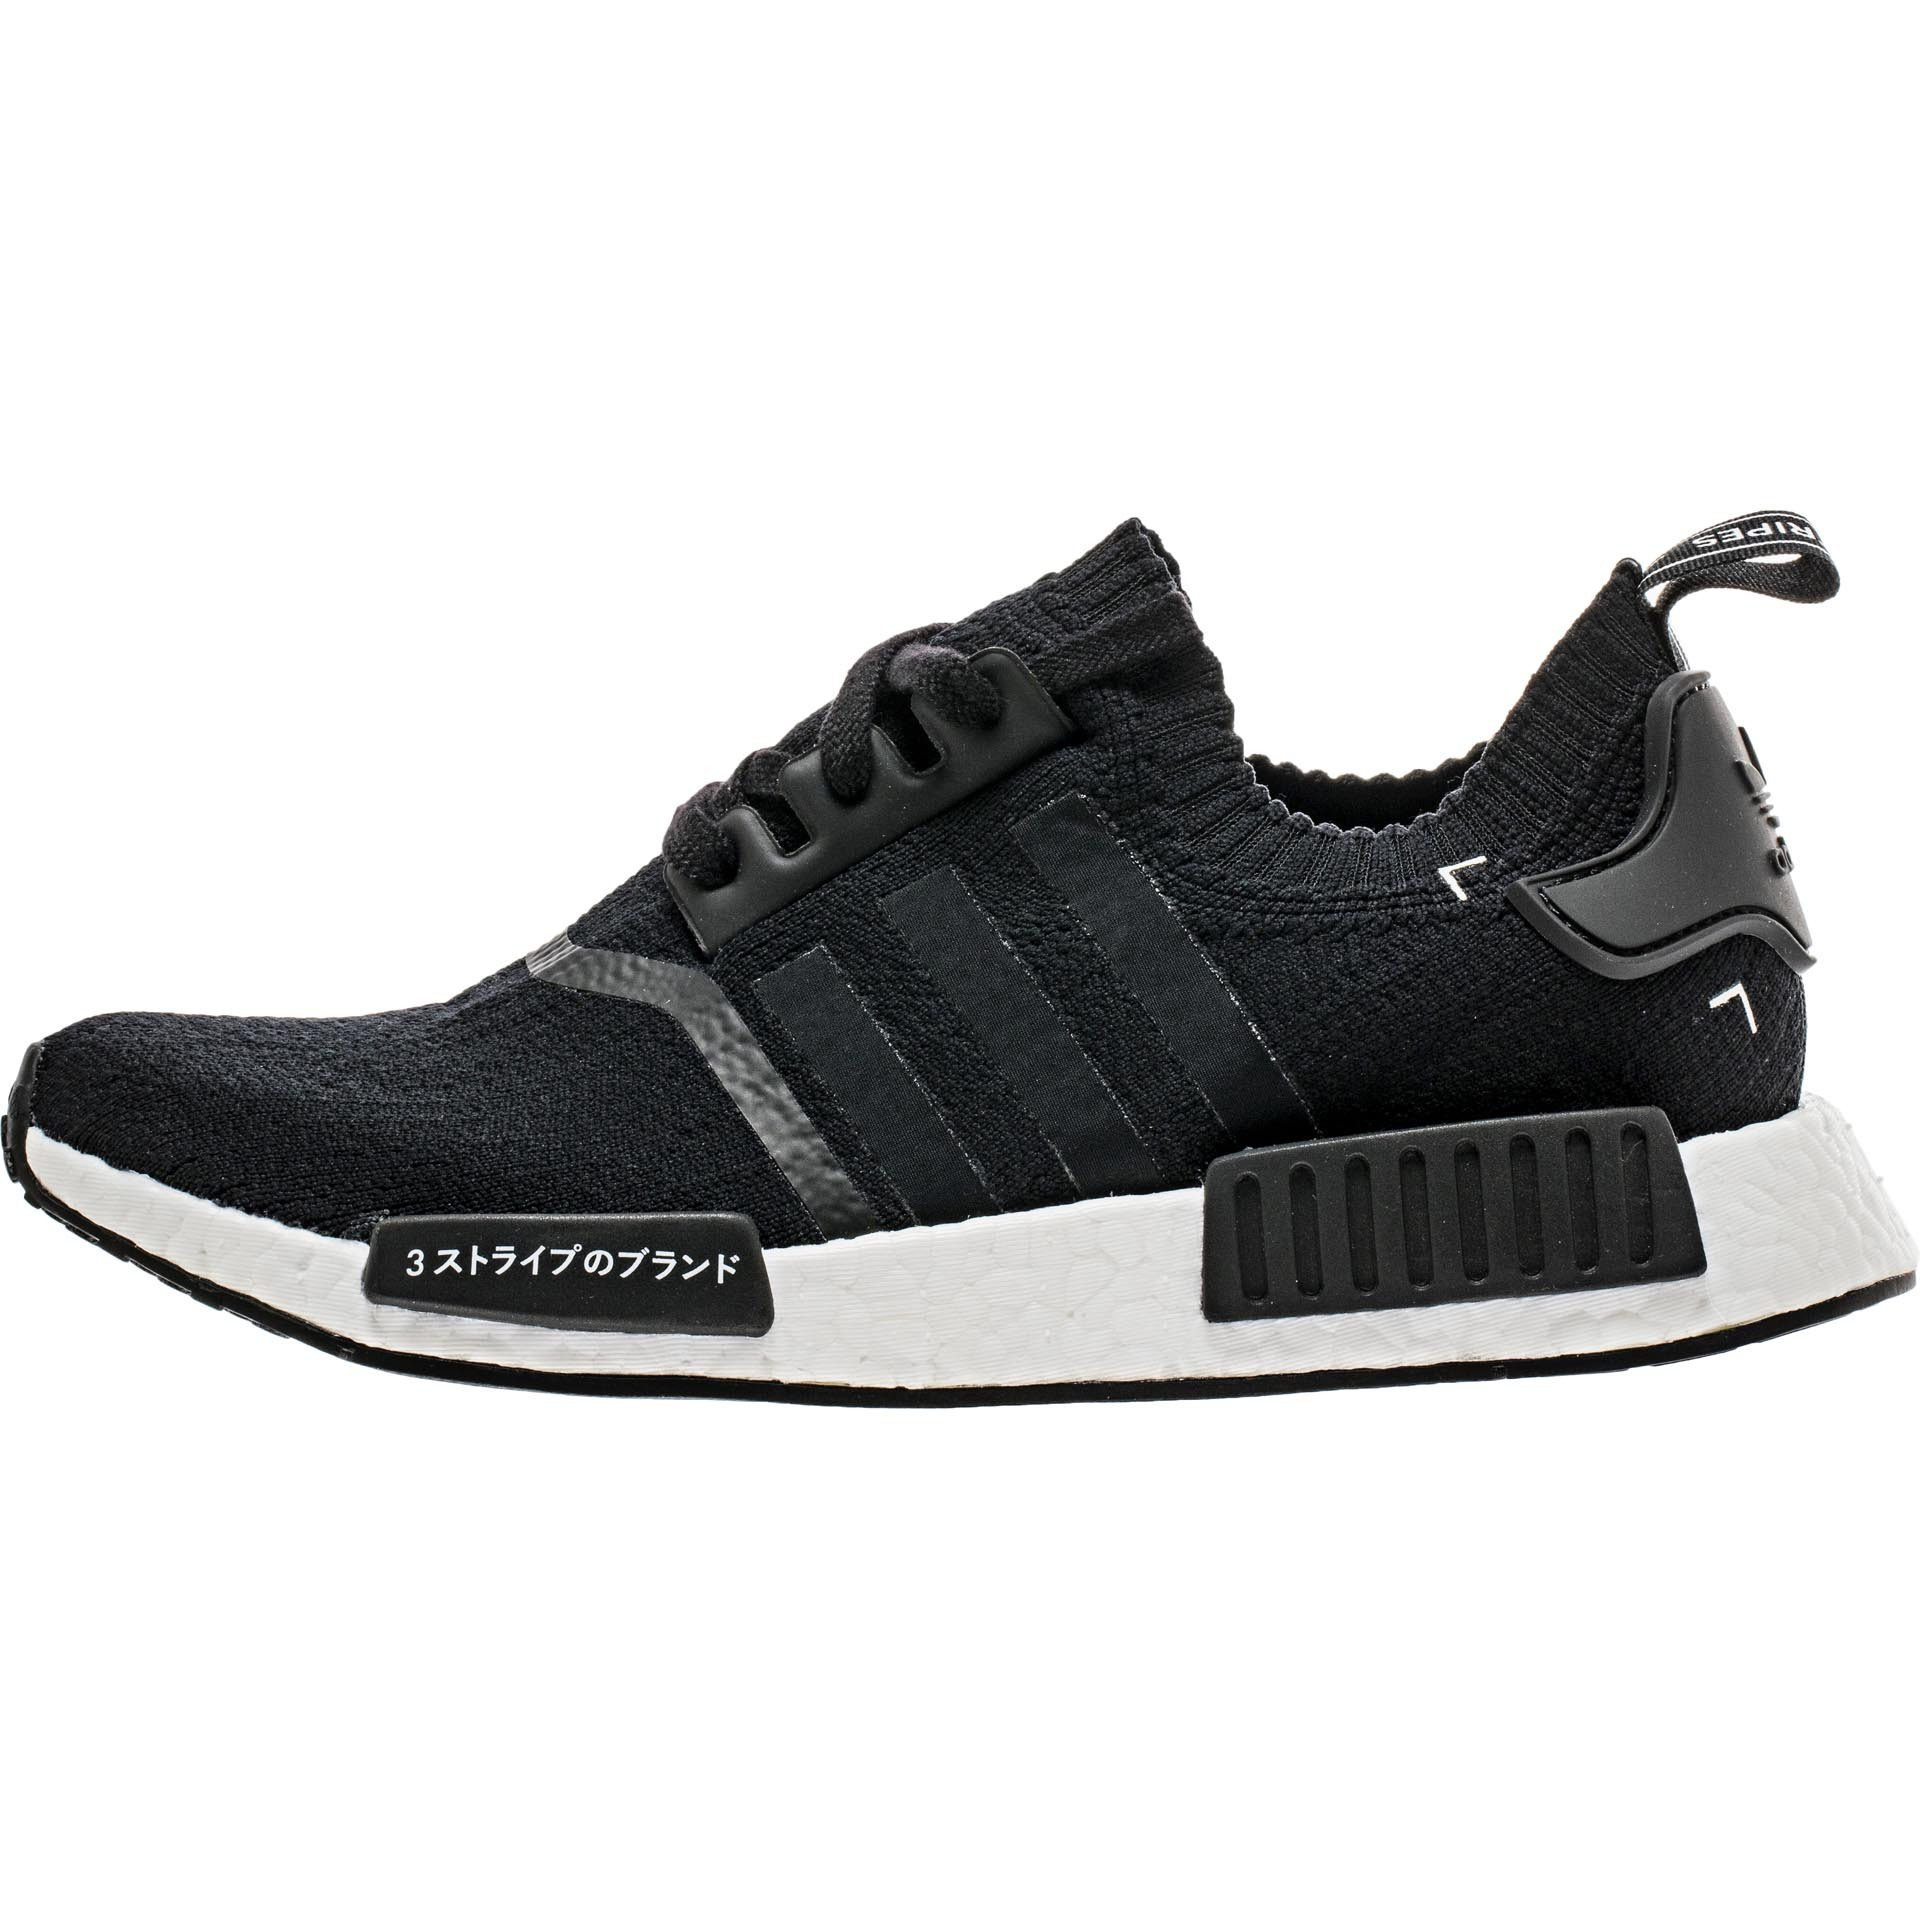 adidas nmd mens black